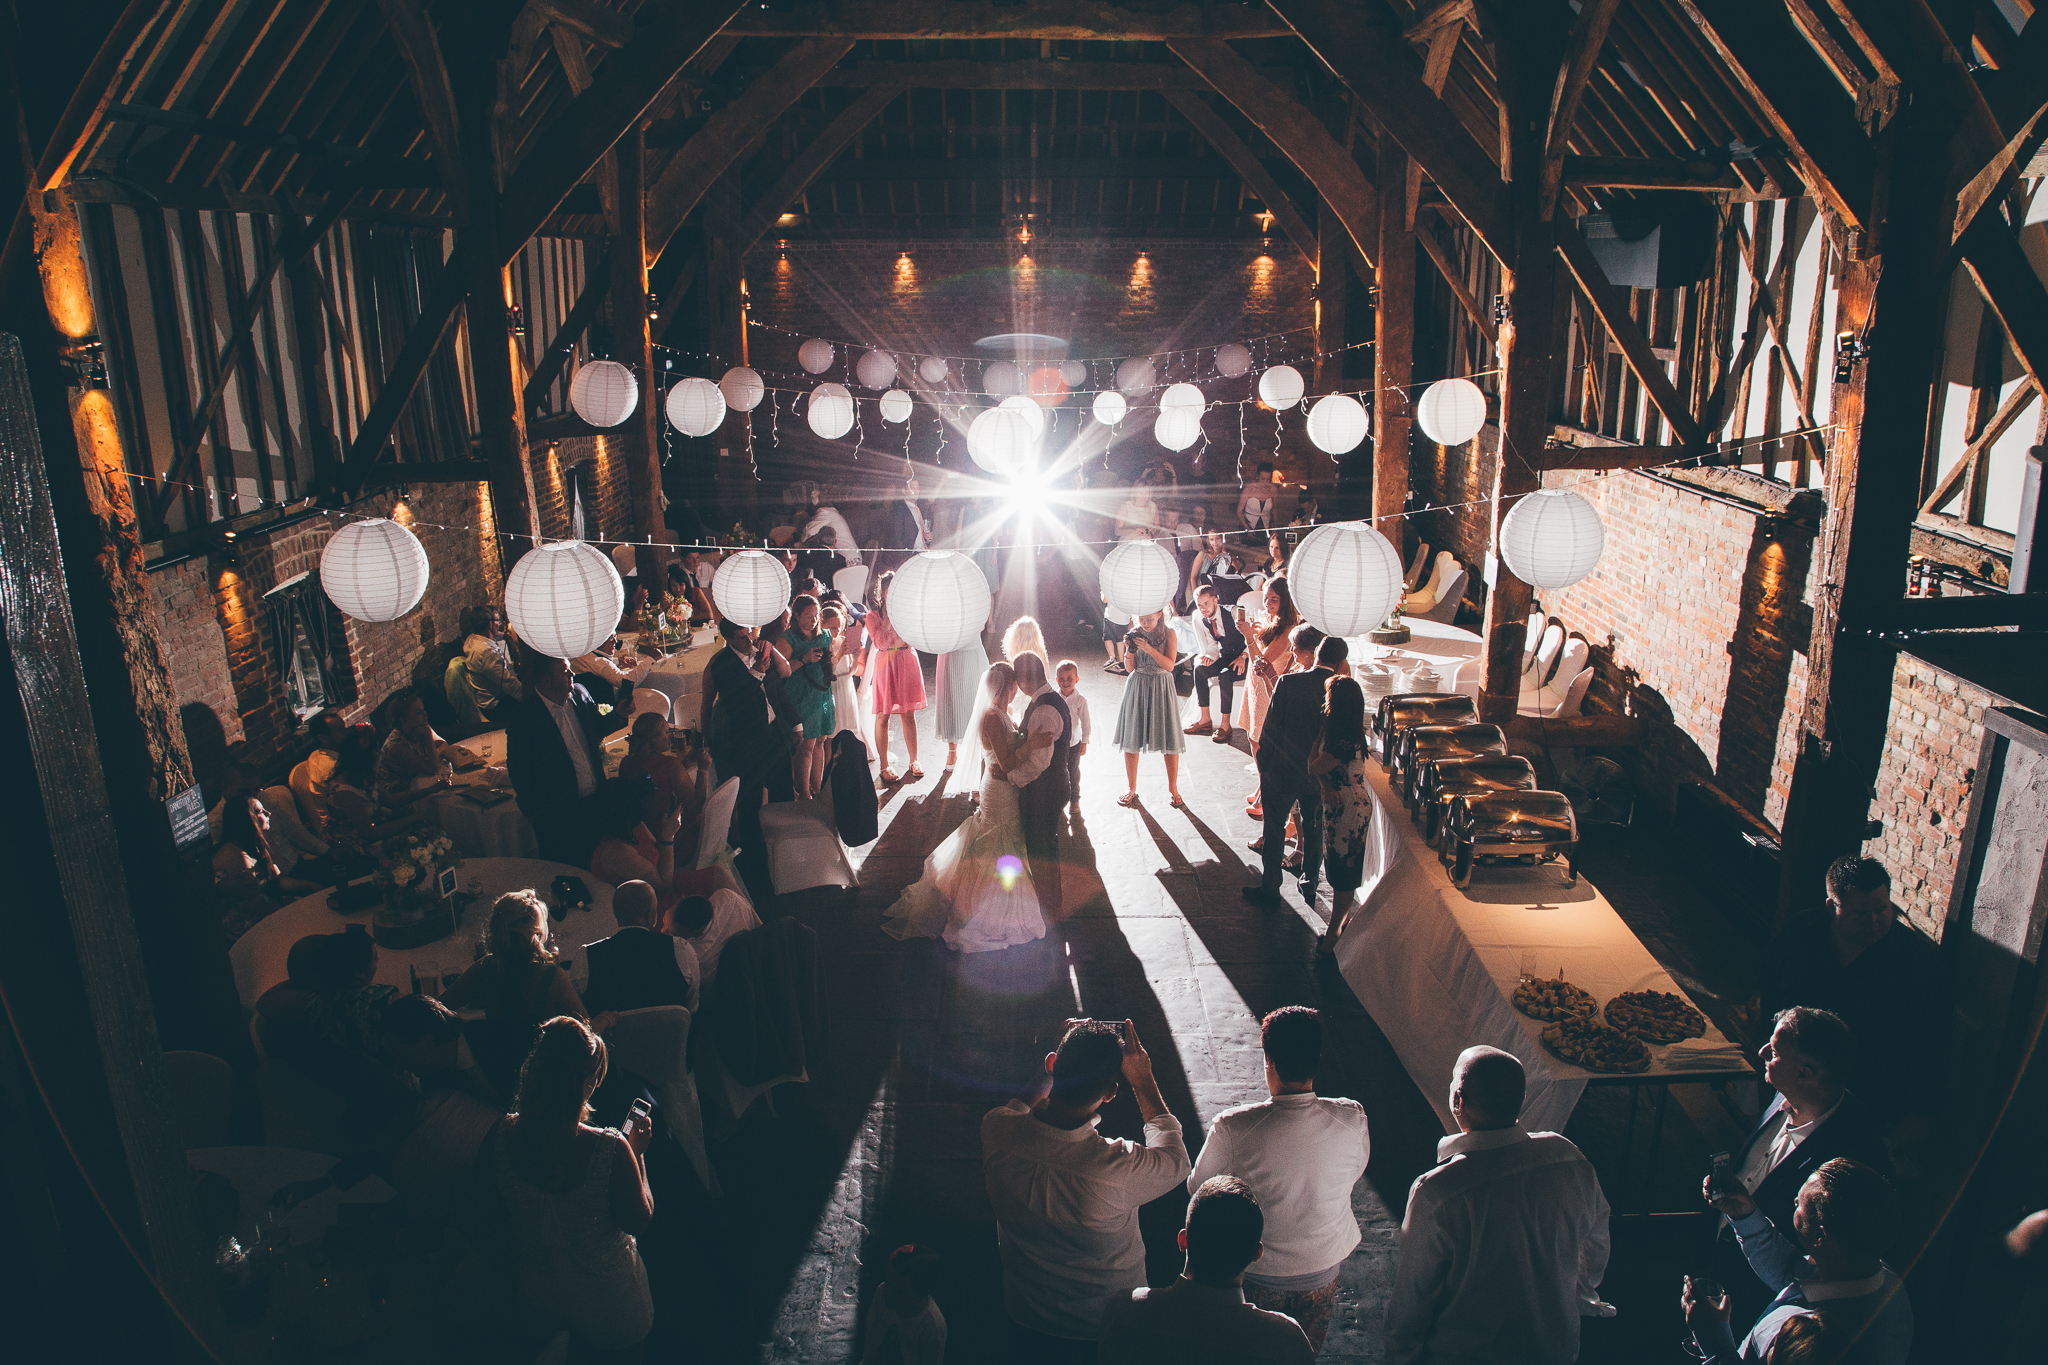 Joanna Nicole Photography Creative artistic wedding photography kent cooling castle barns vintage documentary (103 of 106).jpg